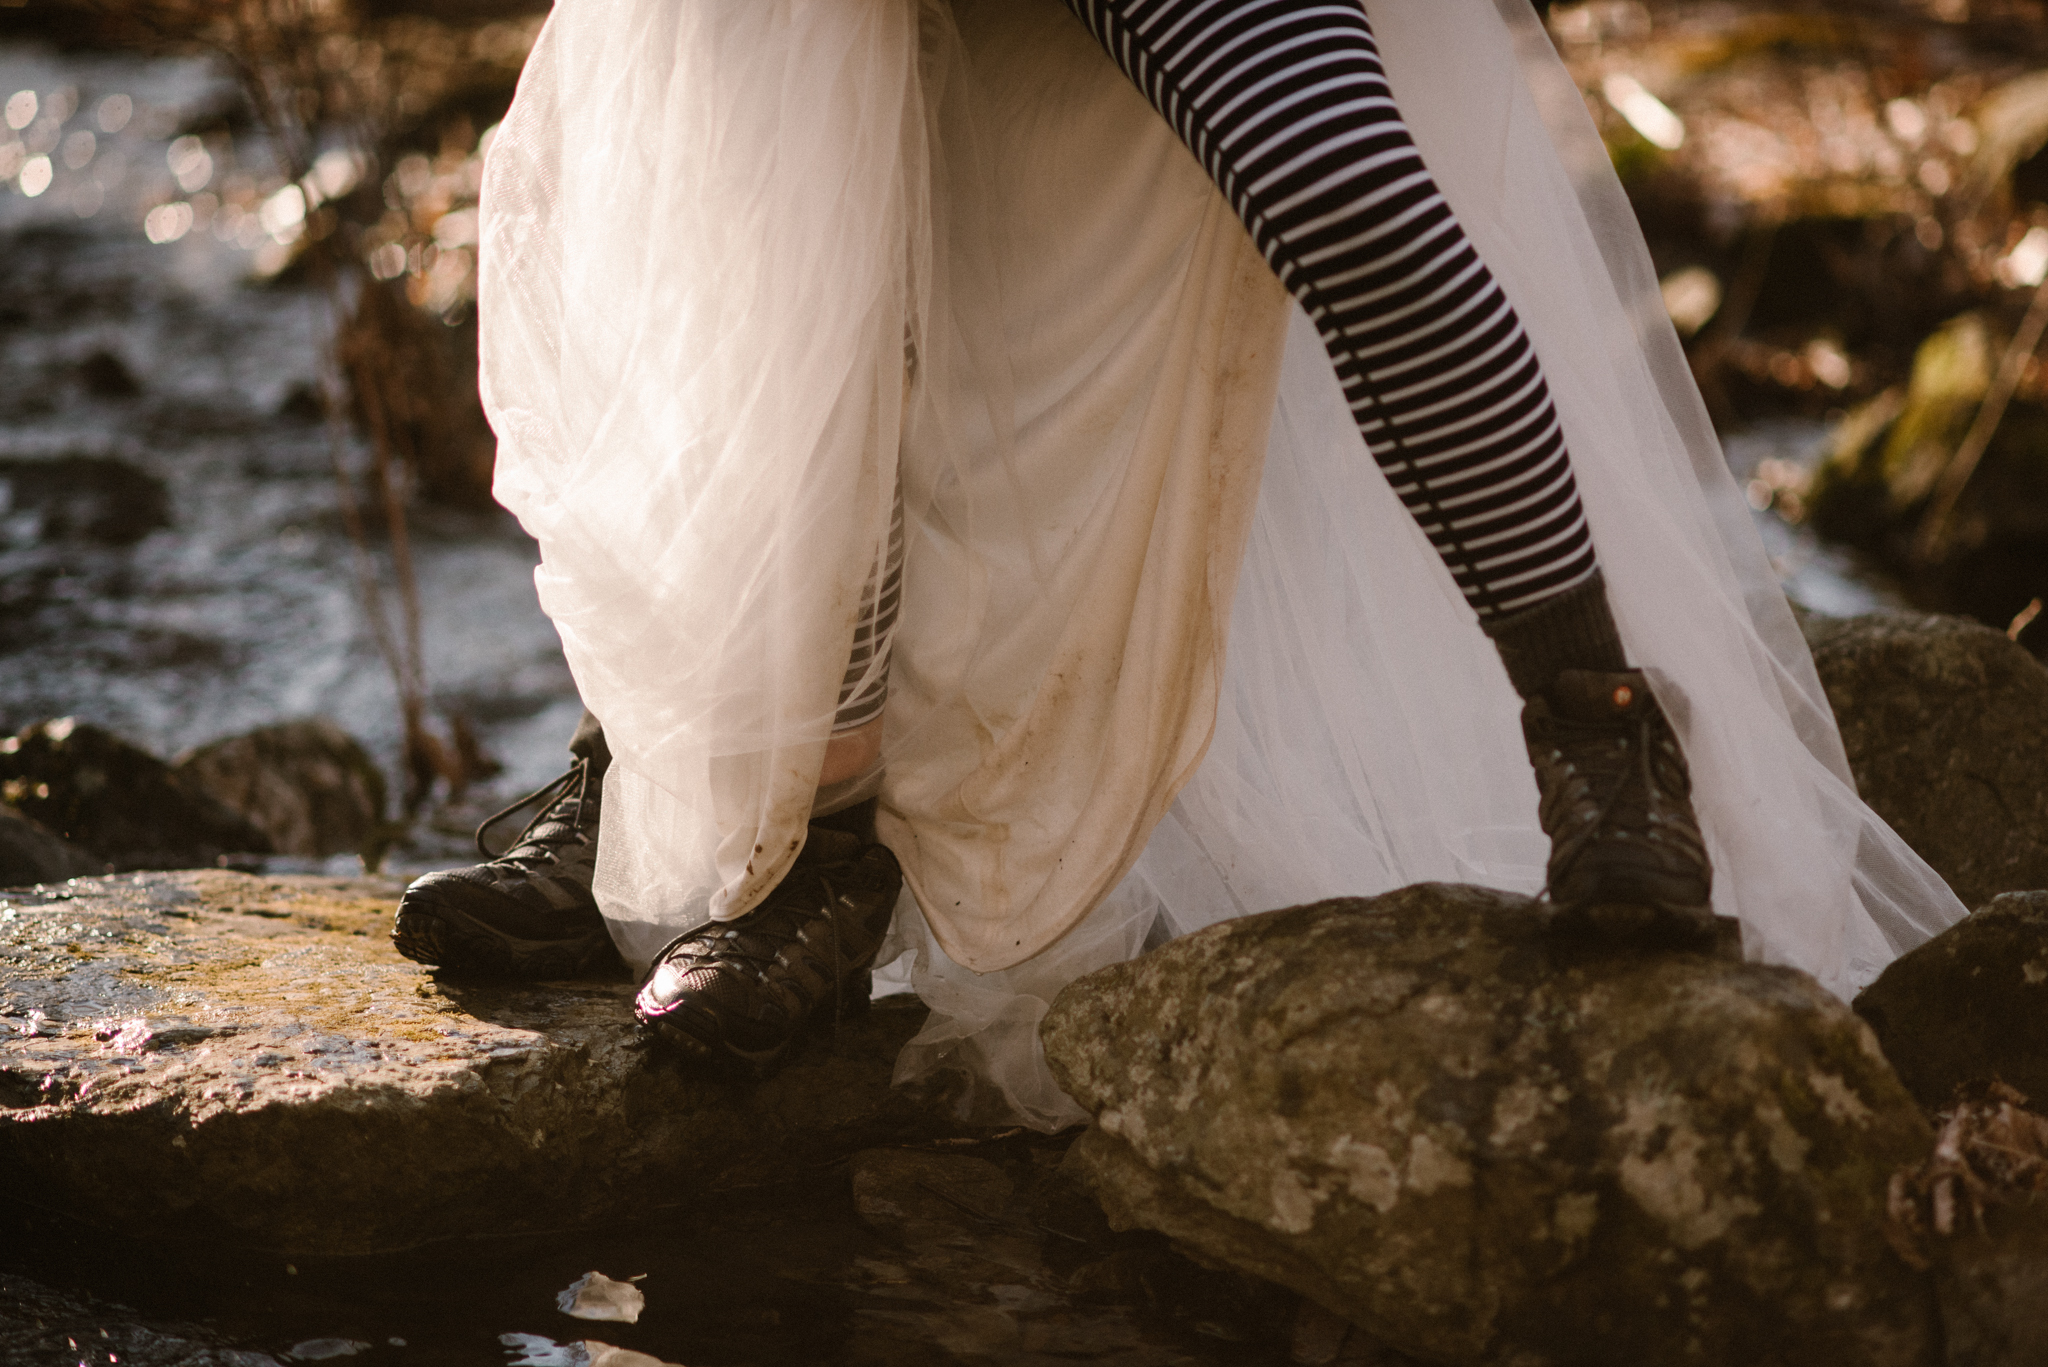 Stephanie and Steve - Shenandoah National Park Elopement - Sunrise Hiking Elopement - Adventurous Elopement - Virginia Elopement Photographer - Shenandoah national Park Wedding Photographer - White Sails Creative_48.jpg